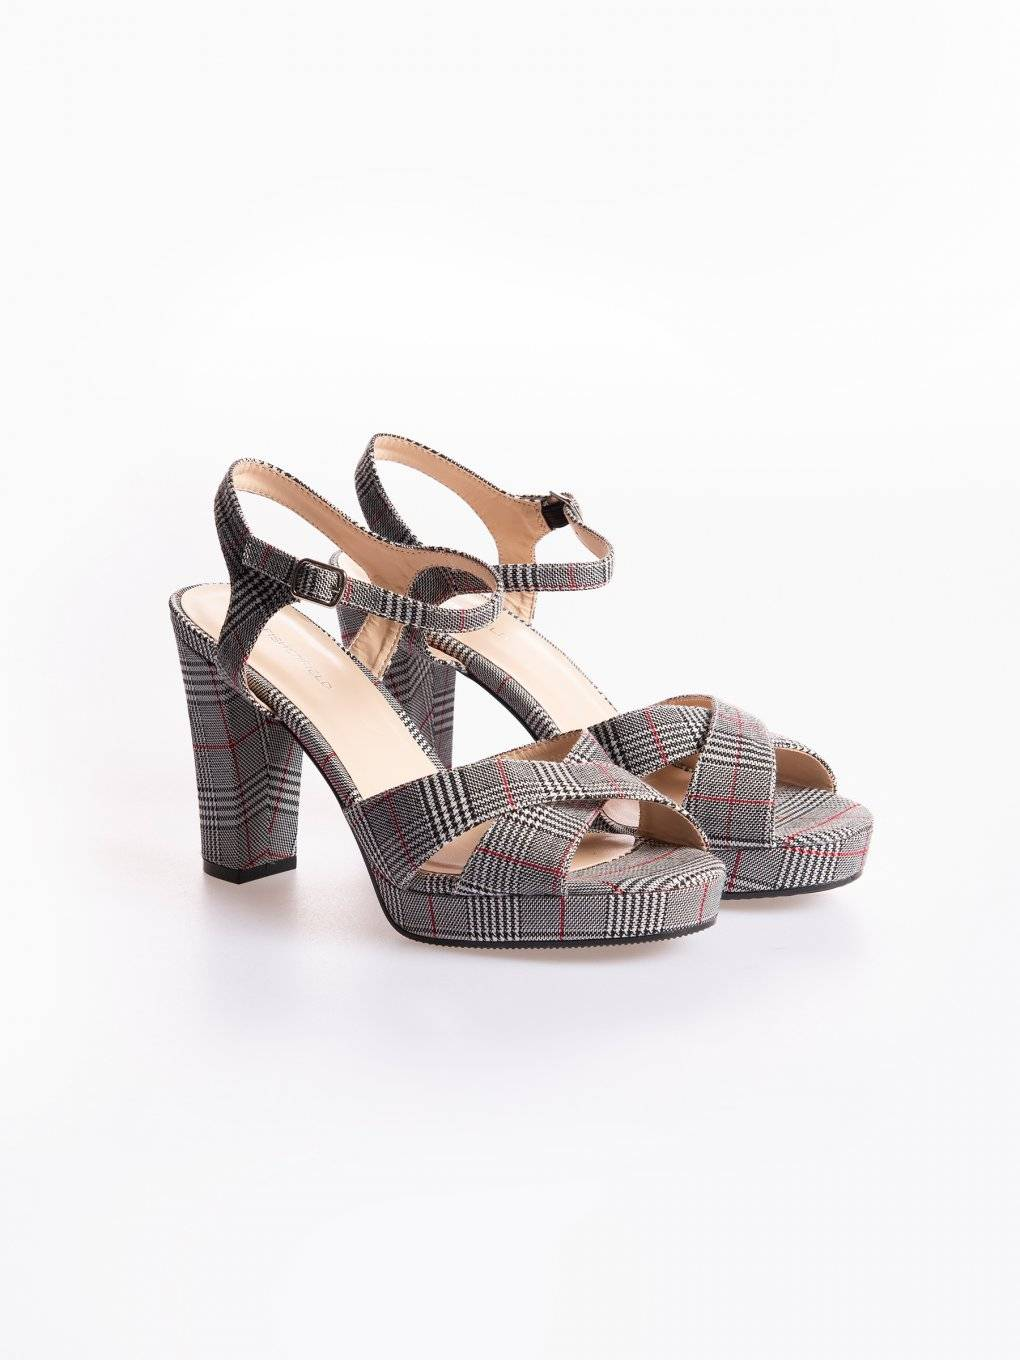 High heel plaid sandals